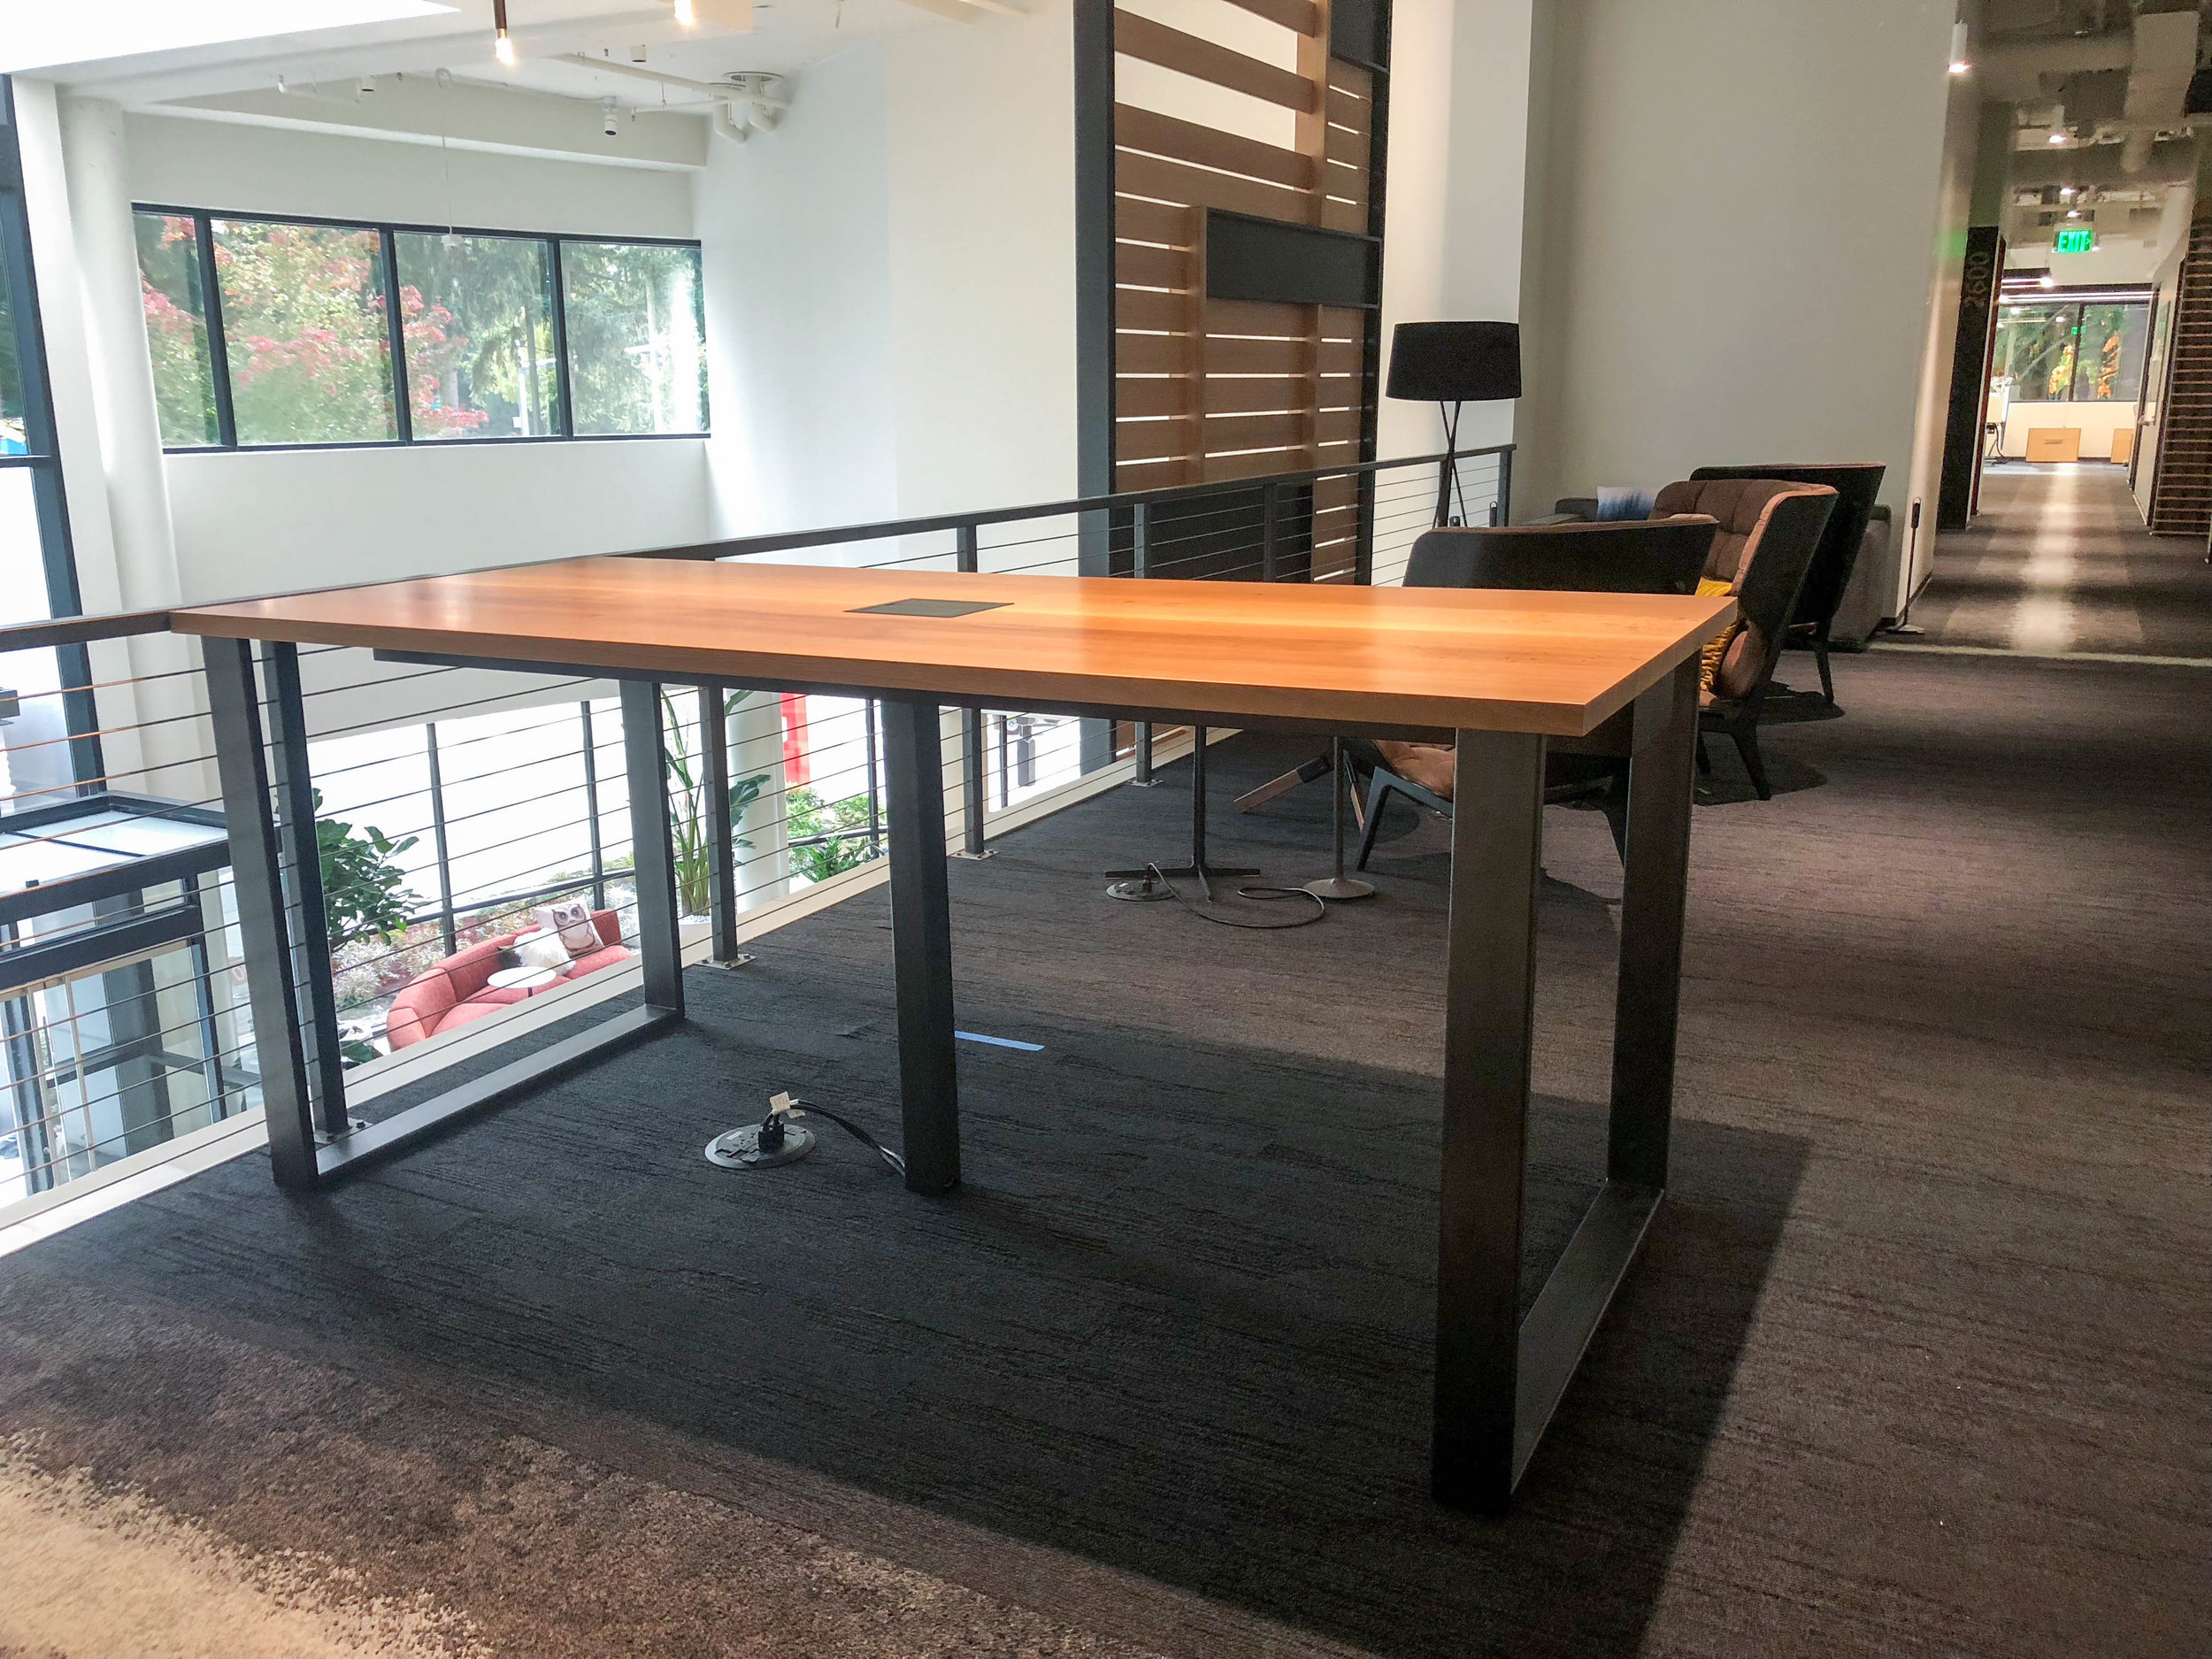 Brower Table in square edge Maple with Clear wood finish; base in Matte Black, INTG1 data unit and center metal data leg